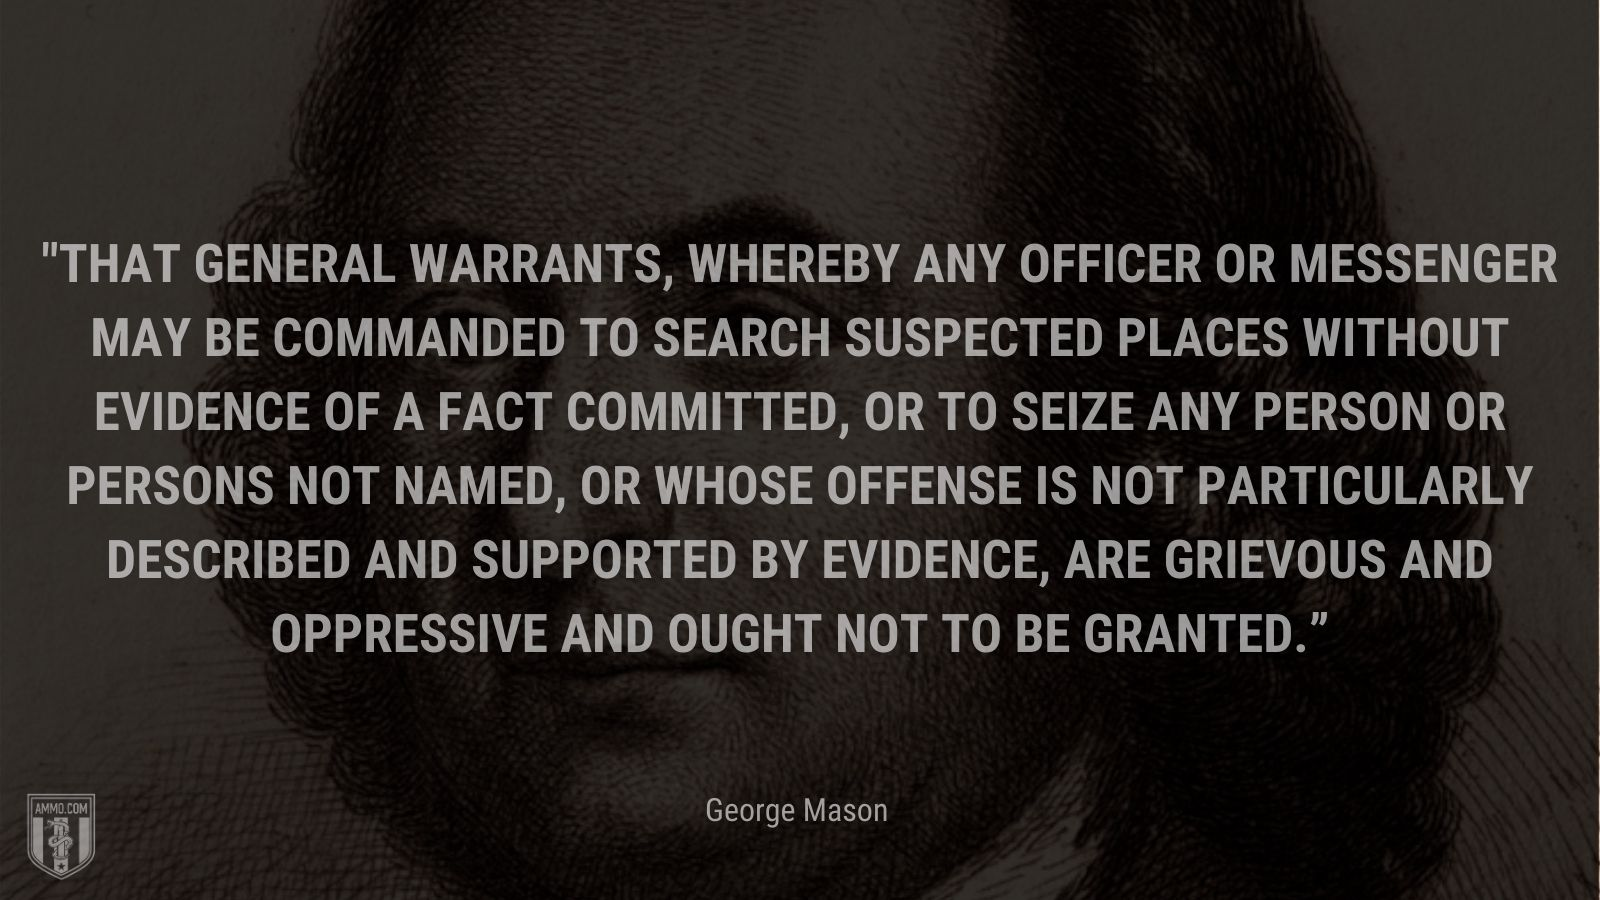 """""""That general warrants, whereby any officer or messenger may be commanded to search suspected places without evidence of a fact committed, or to seize any person or persons not named, or whose offense is not particularly described and supported by evidence, are grievous and oppressive and ought not to be granted."""" - George Mason"""